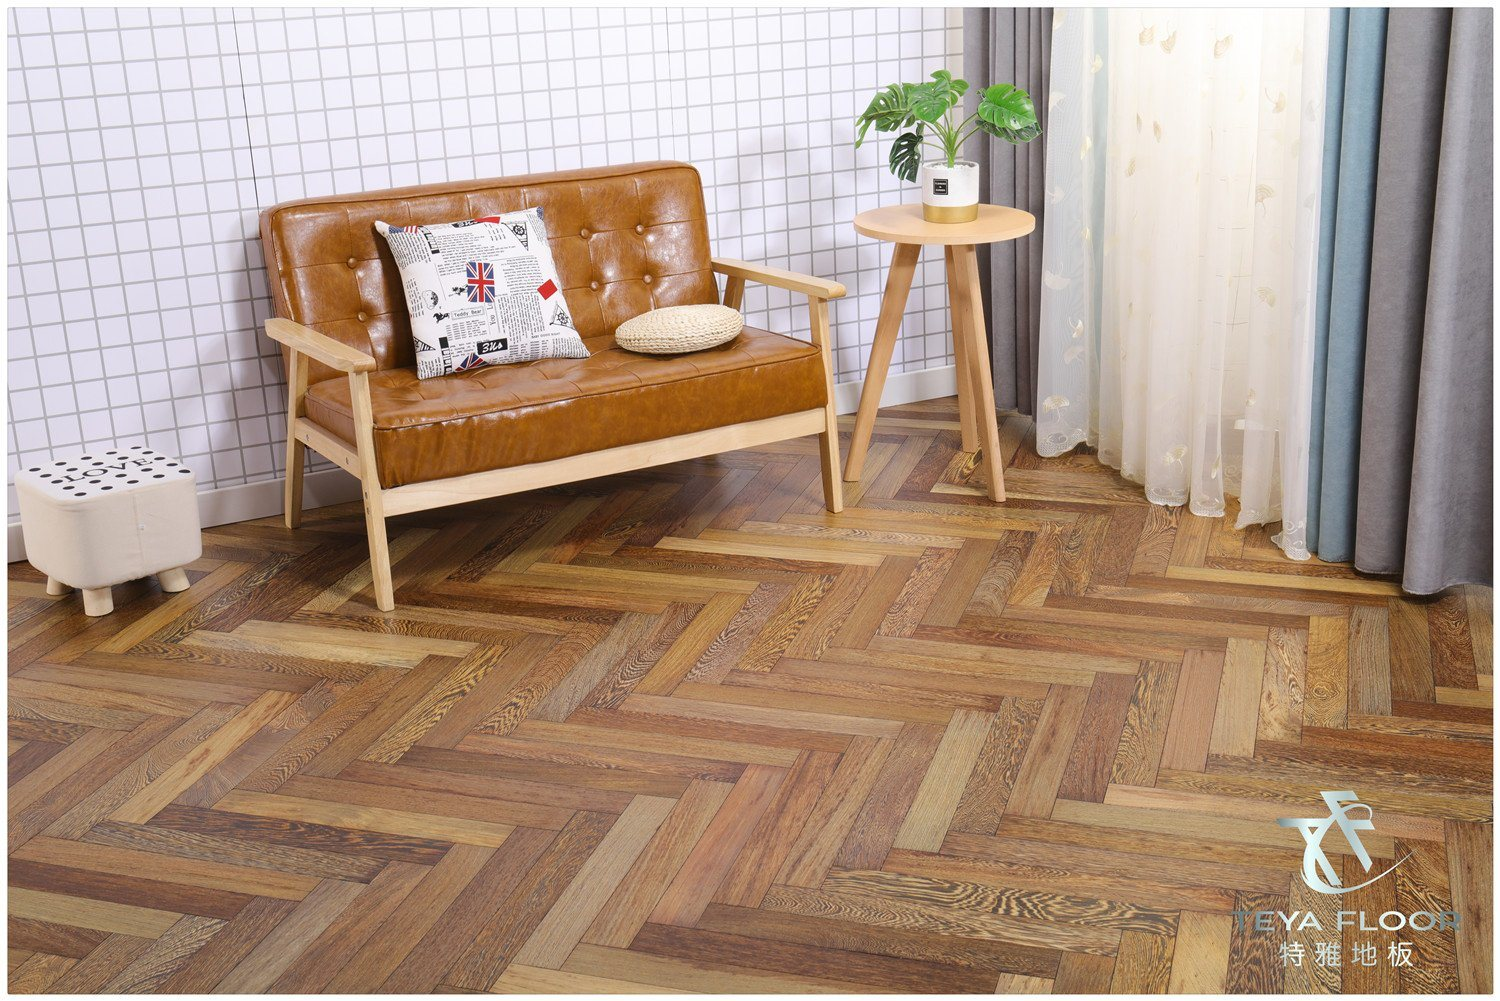 Wenge Oak Solid Wood Flooring [hot item] wenge engineered wood flooring, herringbone, t&g, timber flooring